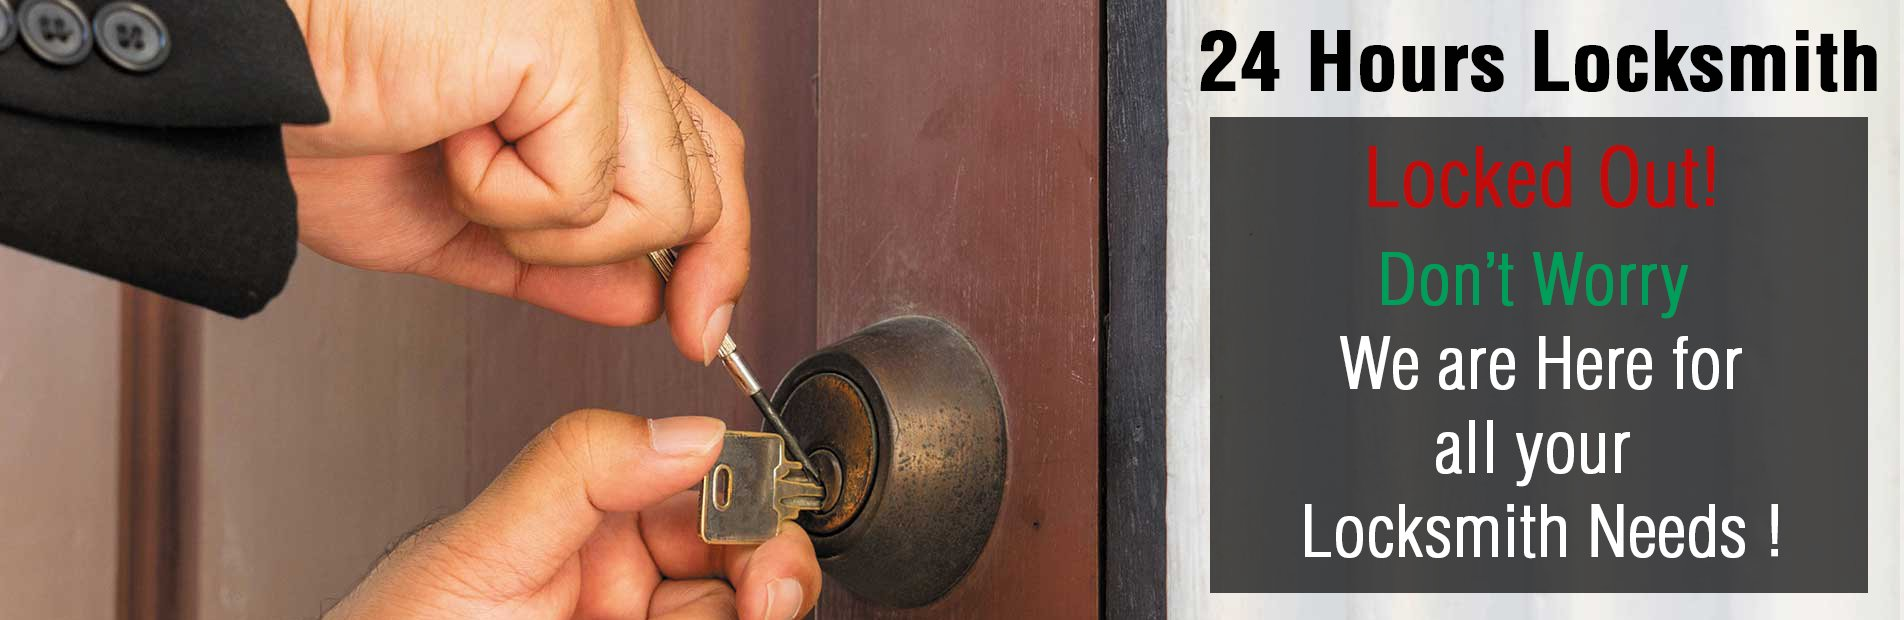 Dallas General Locksmith, Dallas, TX 469-893-4256